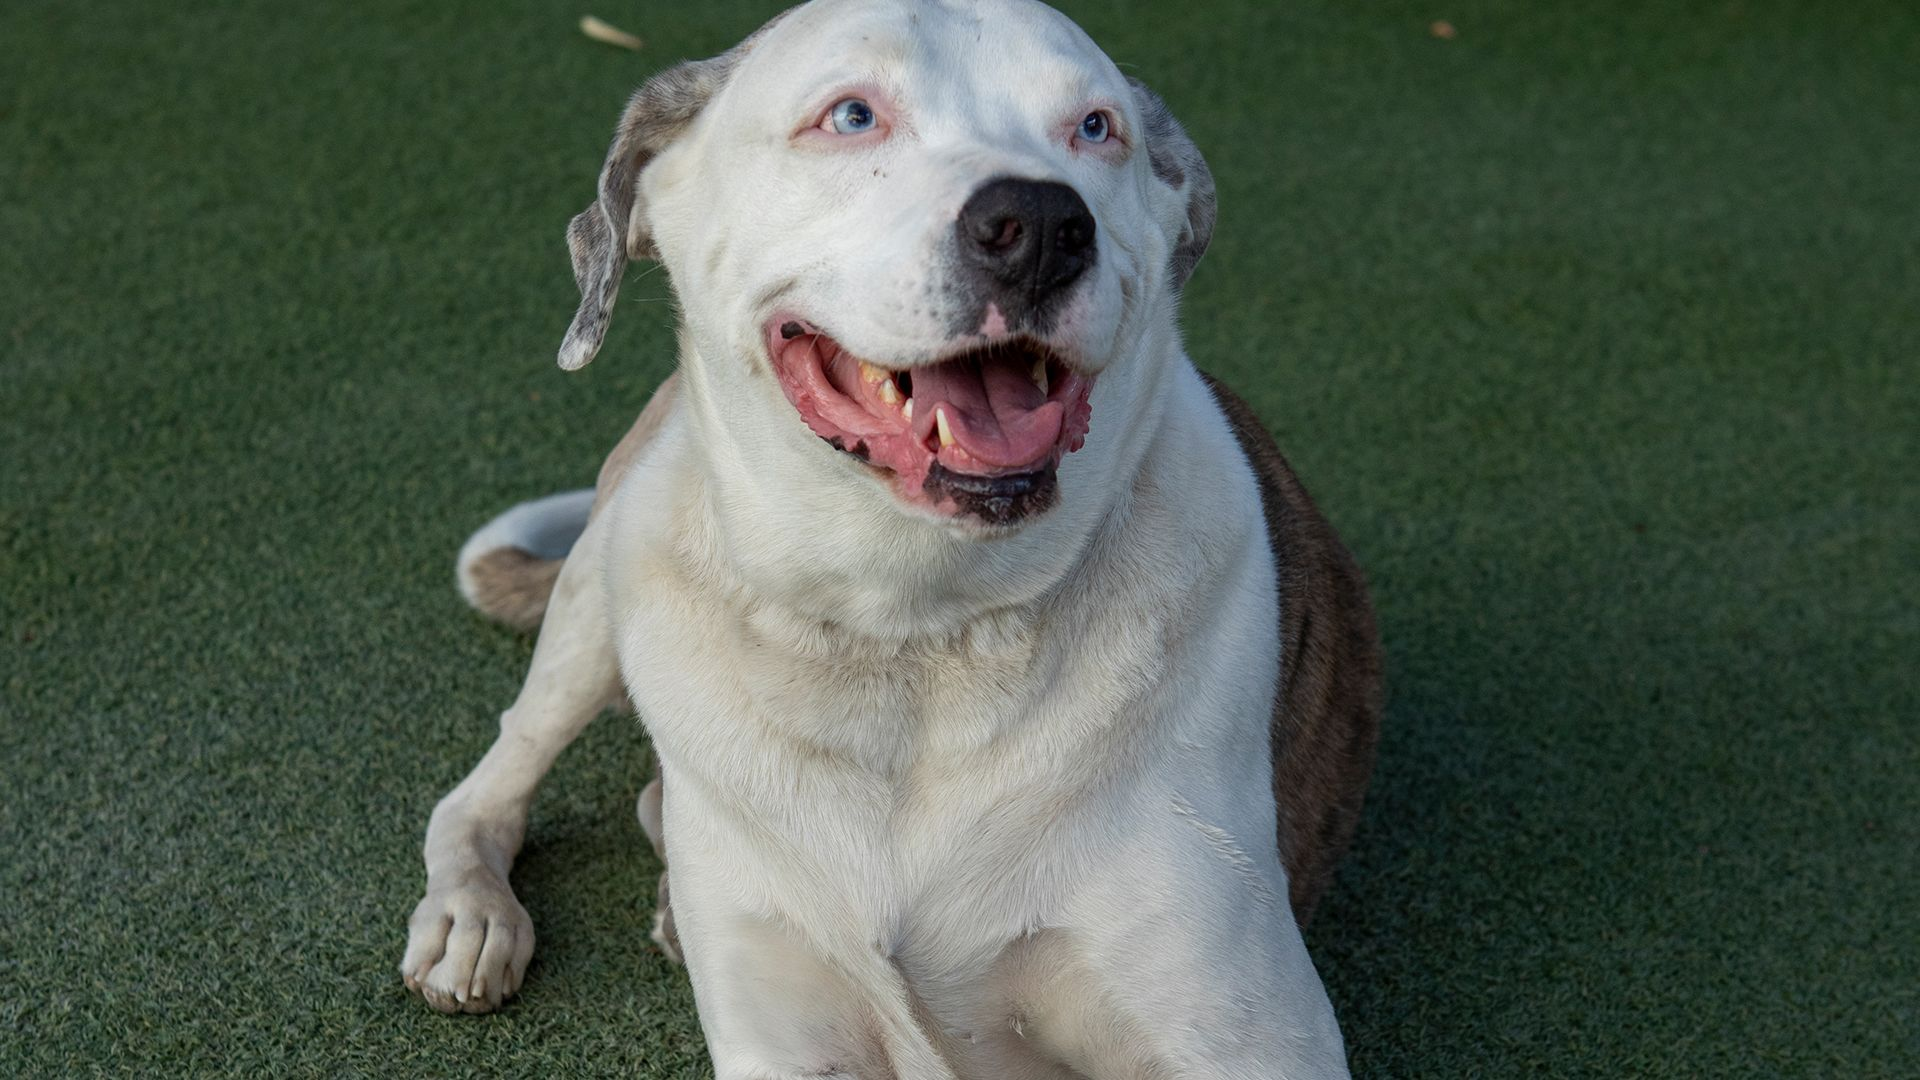 American bulldog mix, Artie, takes a break during a socialization session. This is from Dog... [Photo of the day - October 2021]